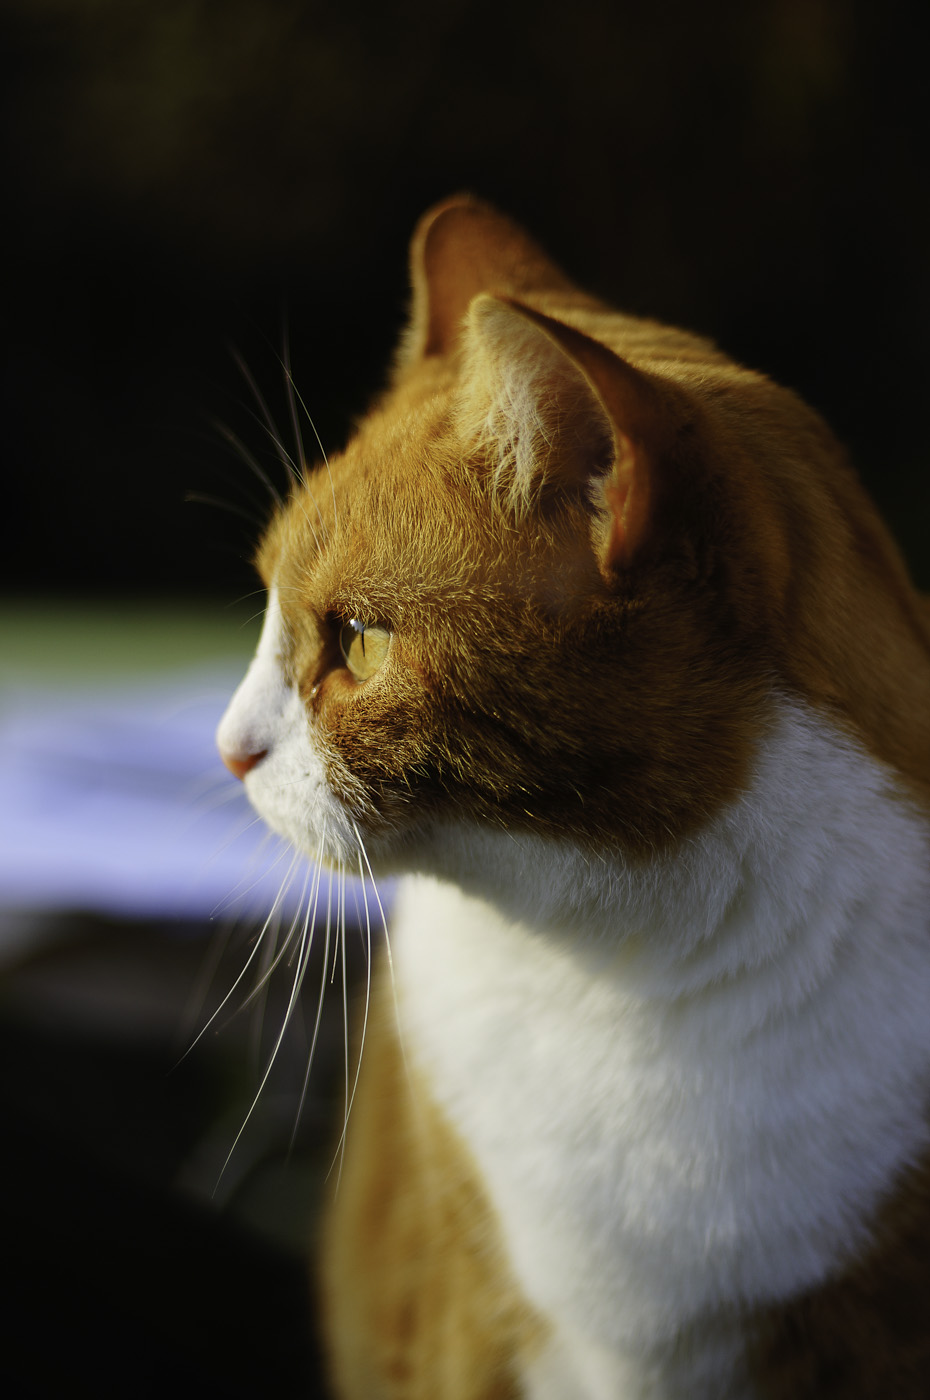 A cat looking intently at something, Sony NEX-5N & Leica Summicron-R 50